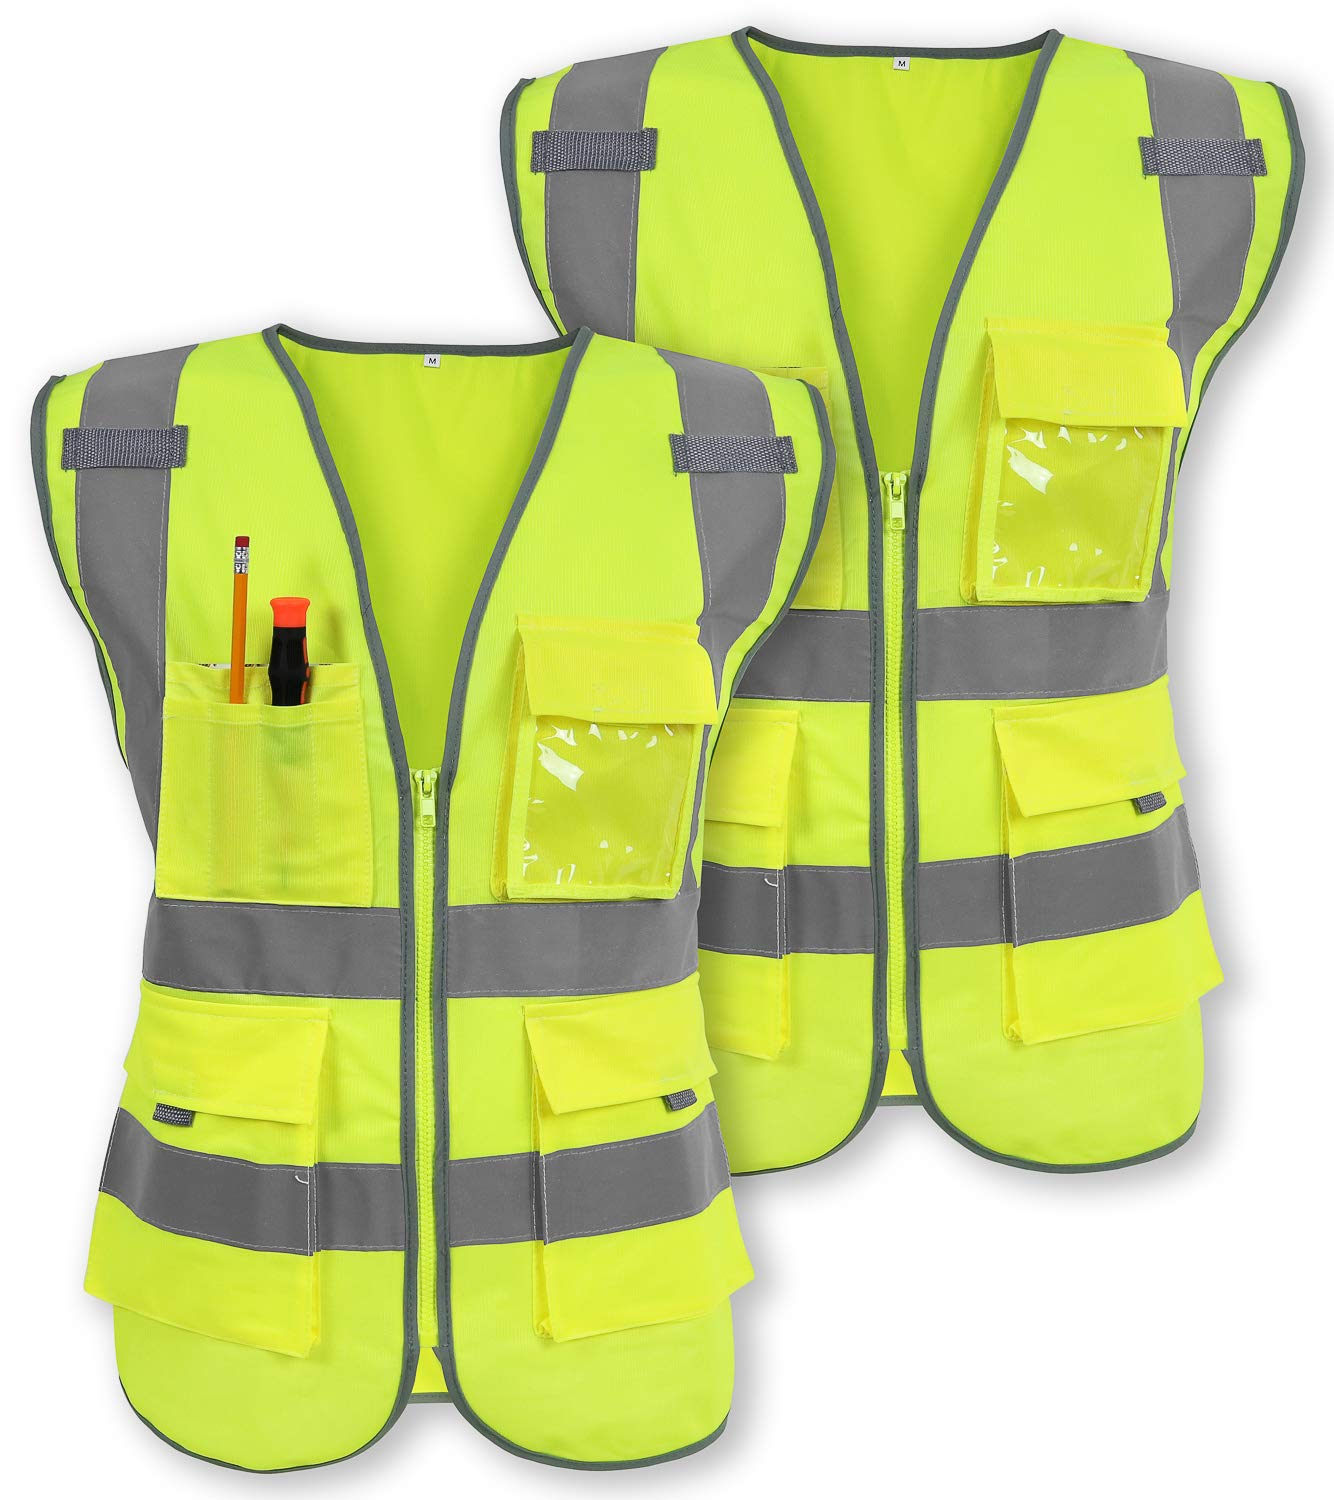 Pack of 2 Safety Vest Reflective Strips Yellow with Front Zipper 9 Pockets, Class 2 High Visibility Meets ANSI/ISEA Standards by Galashield (Large)